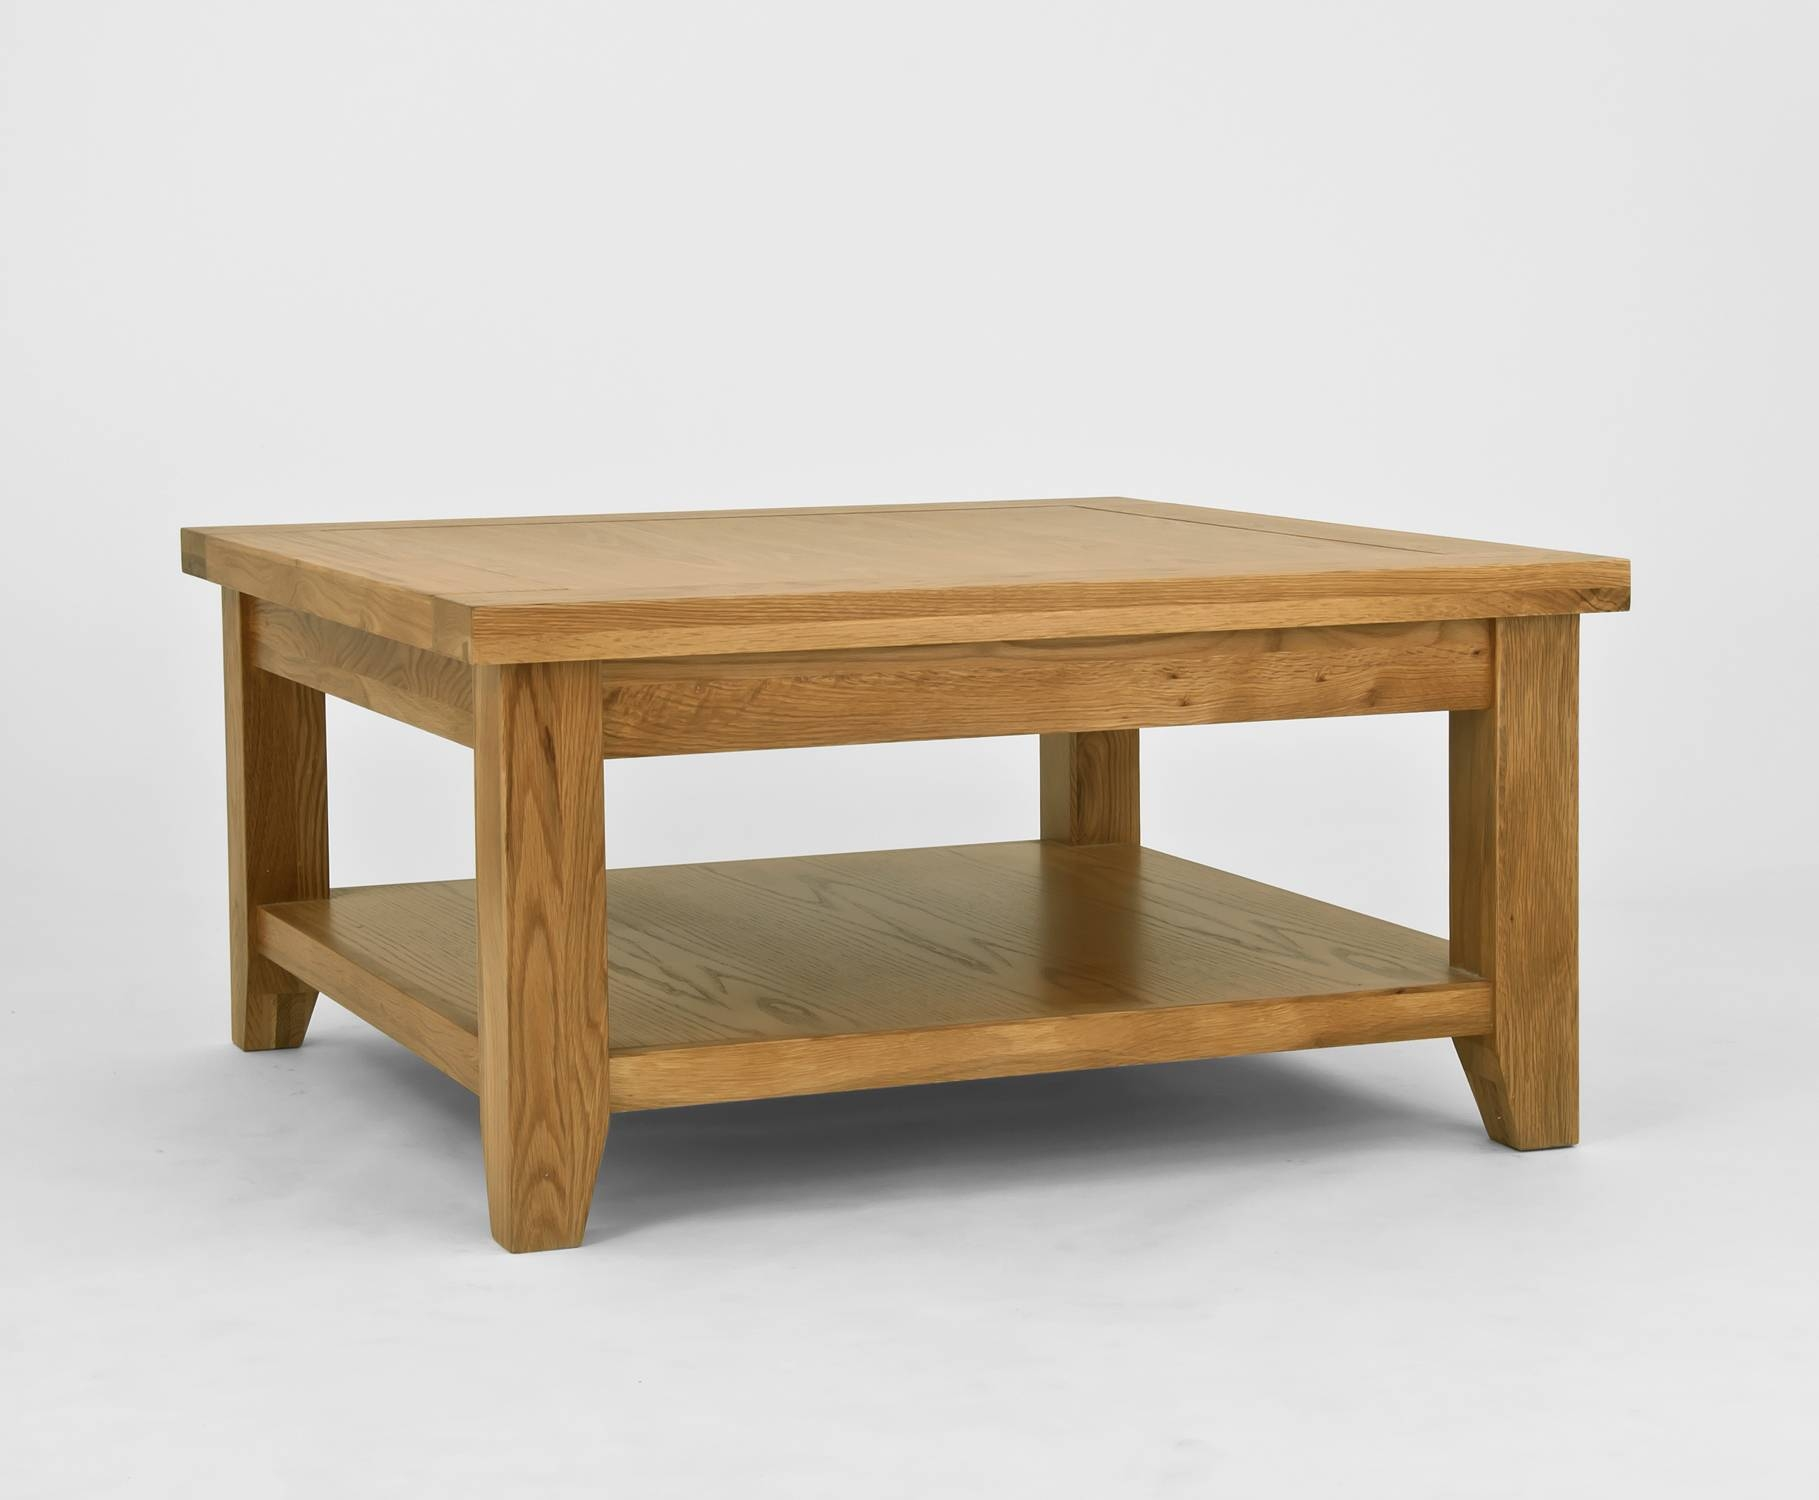 Provence Square Coffee Table With Shelf In Oak - Beyond Stores in Oak Coffee Table With Shelf (Image 12 of 15)